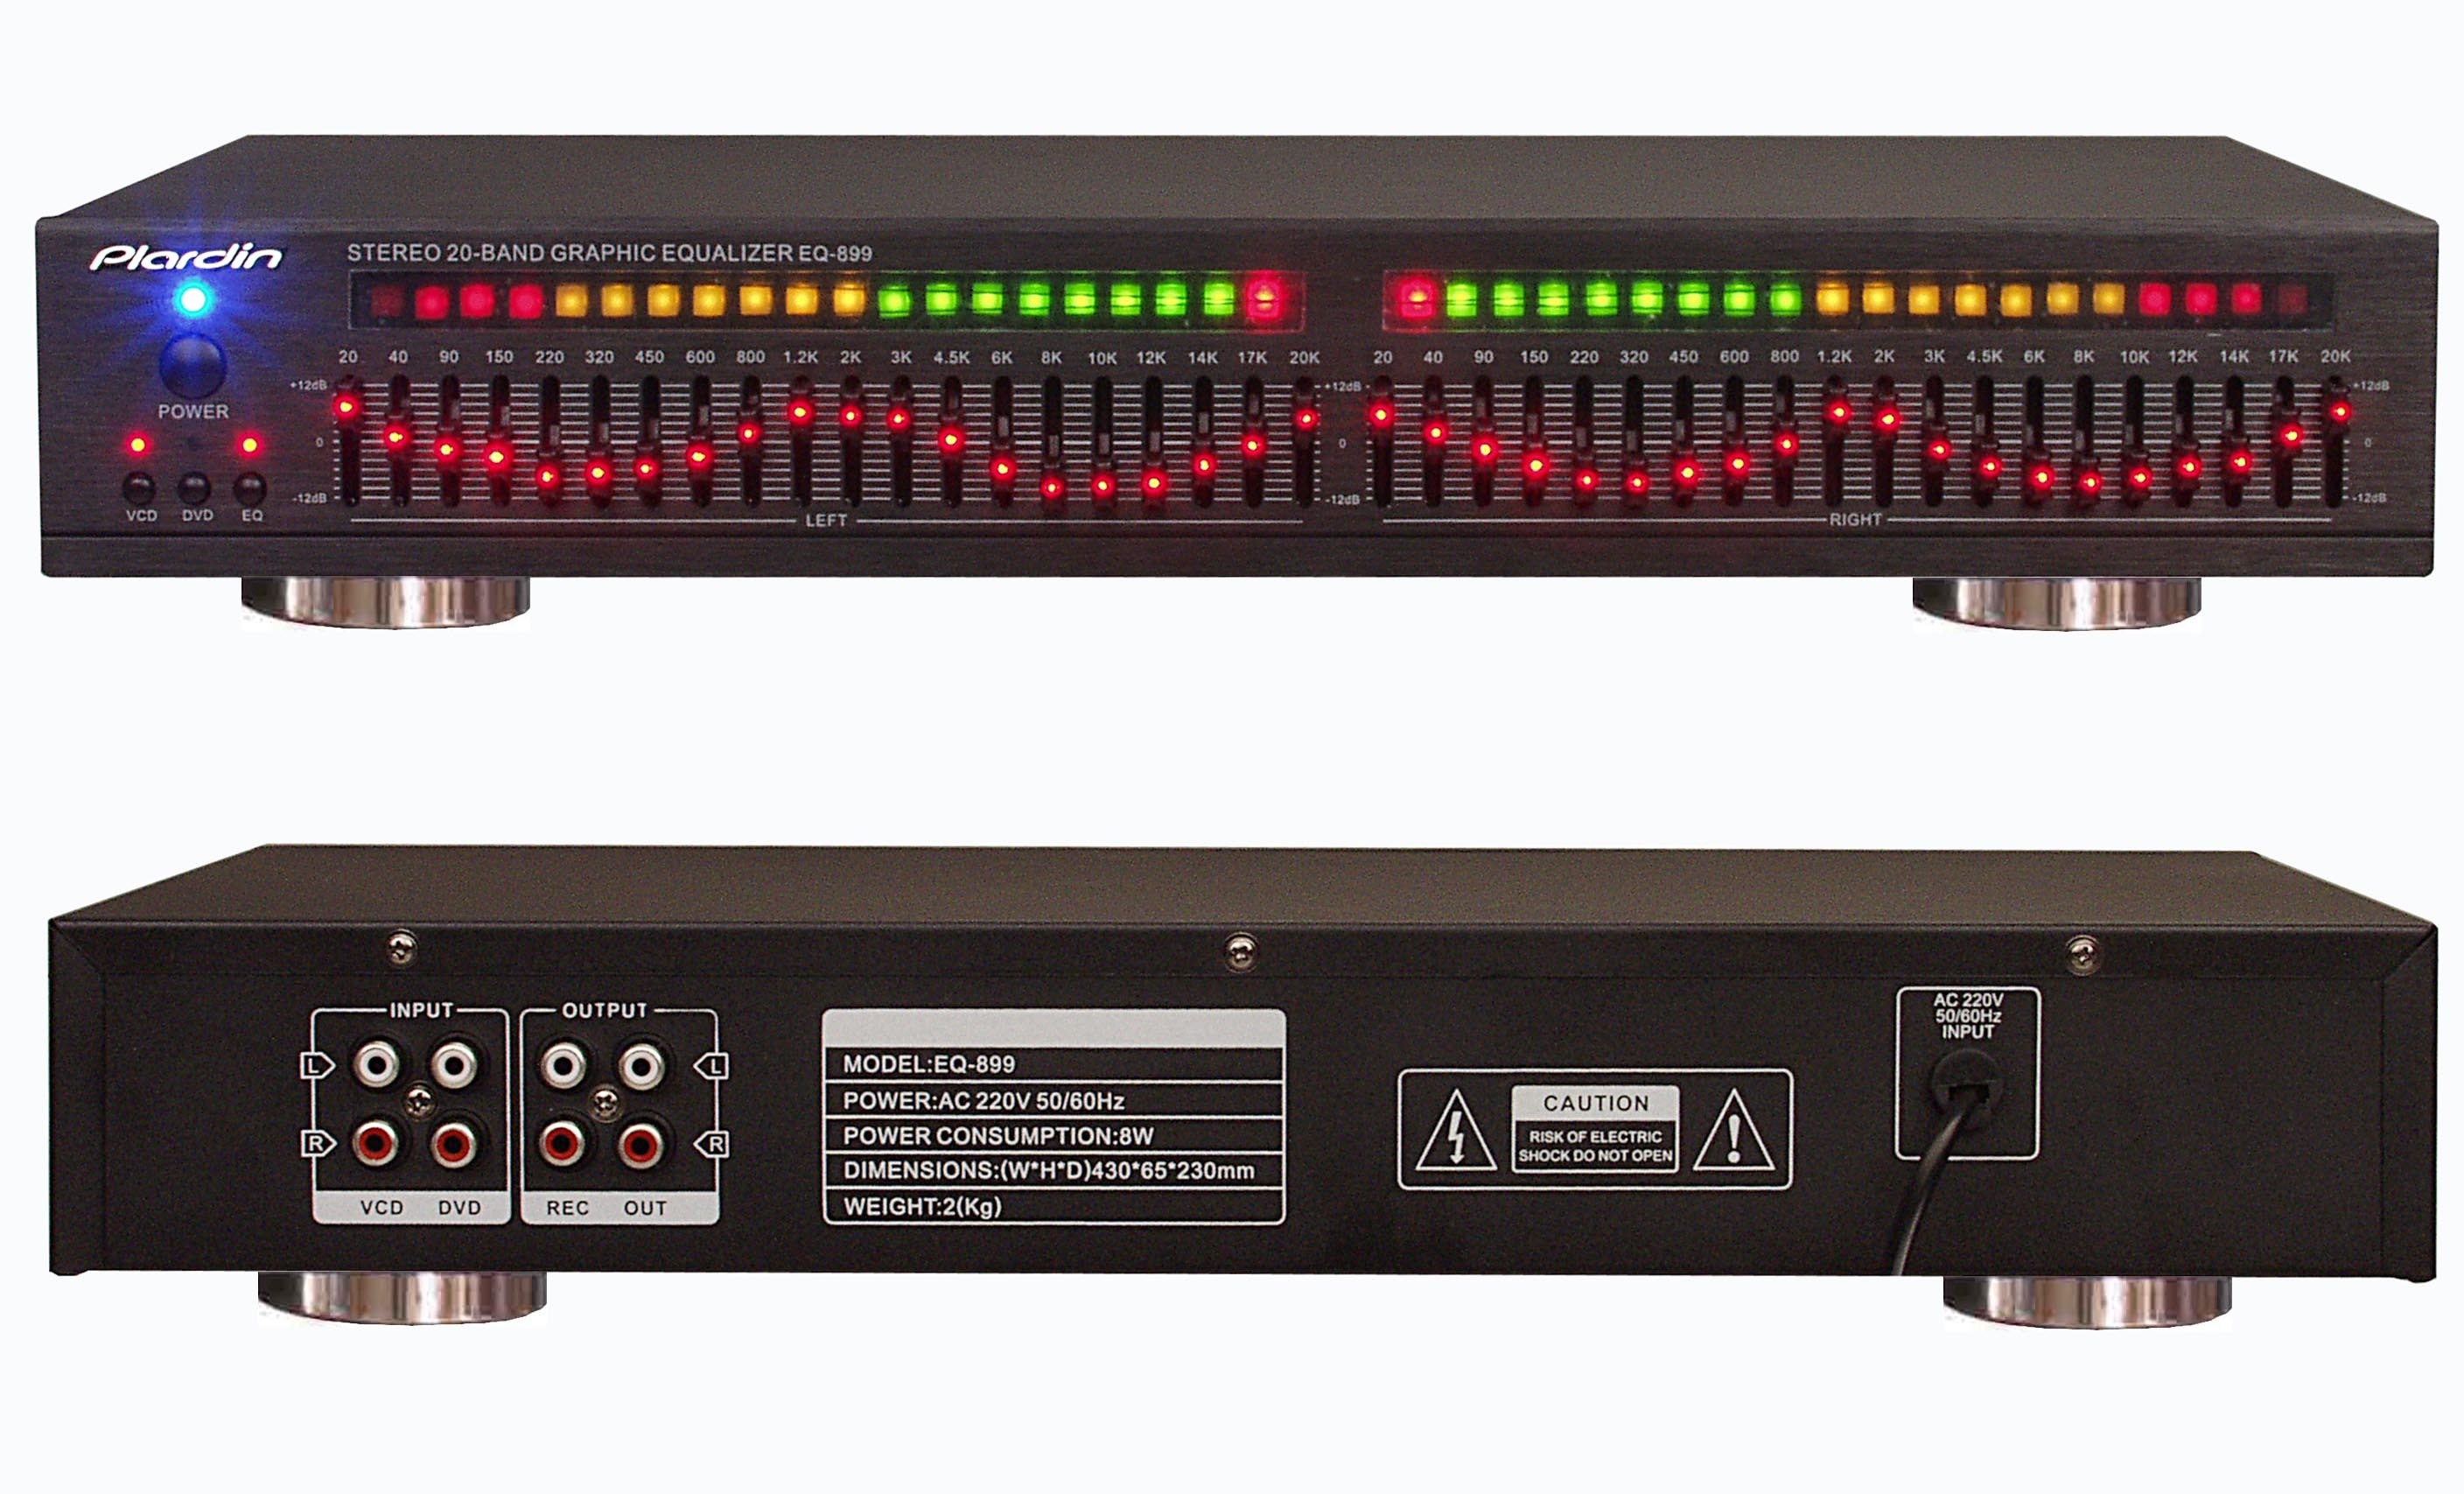 30046 additionally 391170645024 additionally 91083 3947 8939357 together with Alto Professional AEQ215 Rack Mount Audio Equalizer Stereo 15 Band Graphic EQ New ALT13 AEQ215 as well 321694871756. on pyle stereo systems